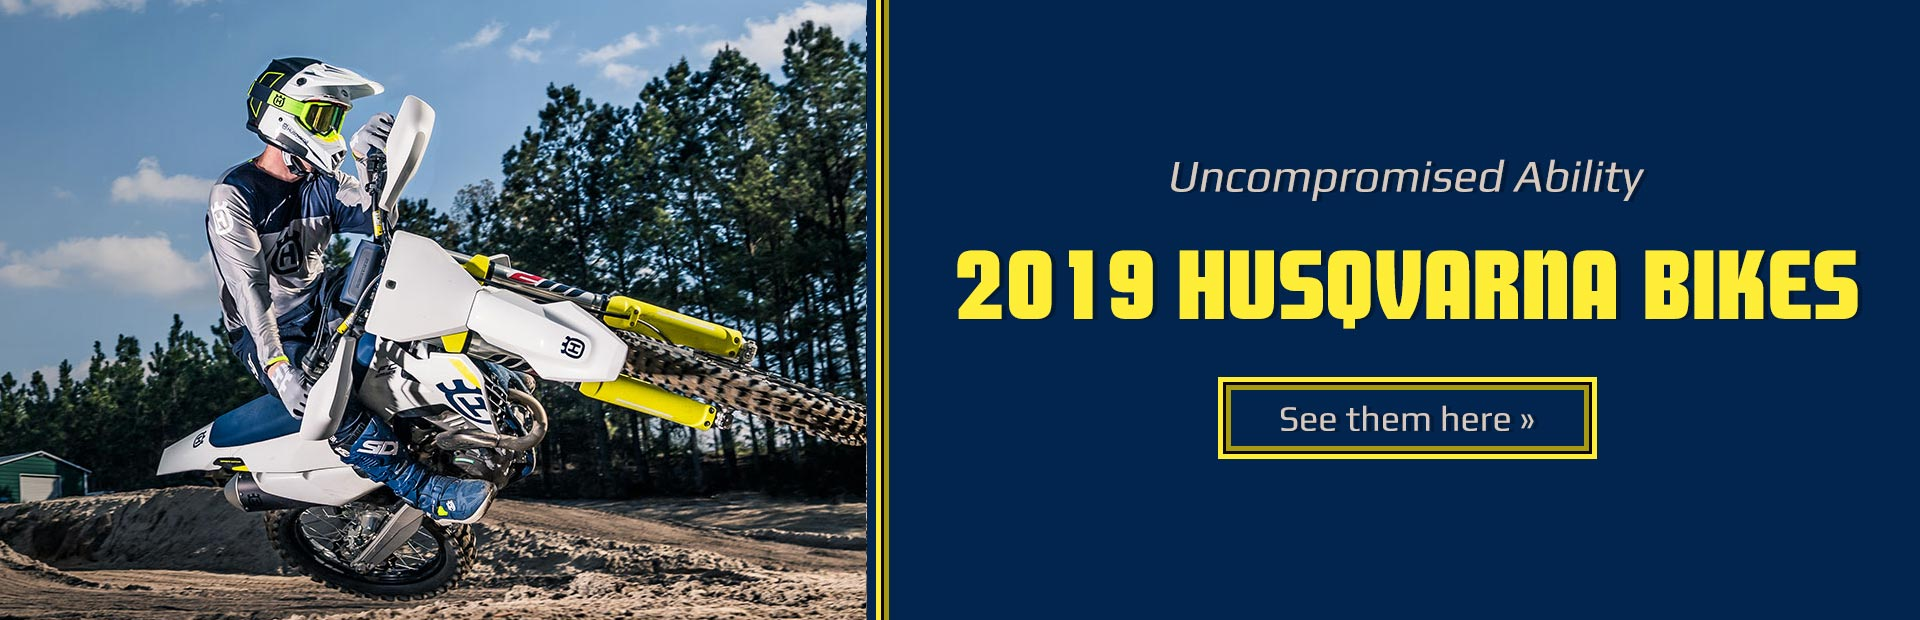 Uncompromised Ability: 2019 Husqvarna Bikes. Click here to view the models.